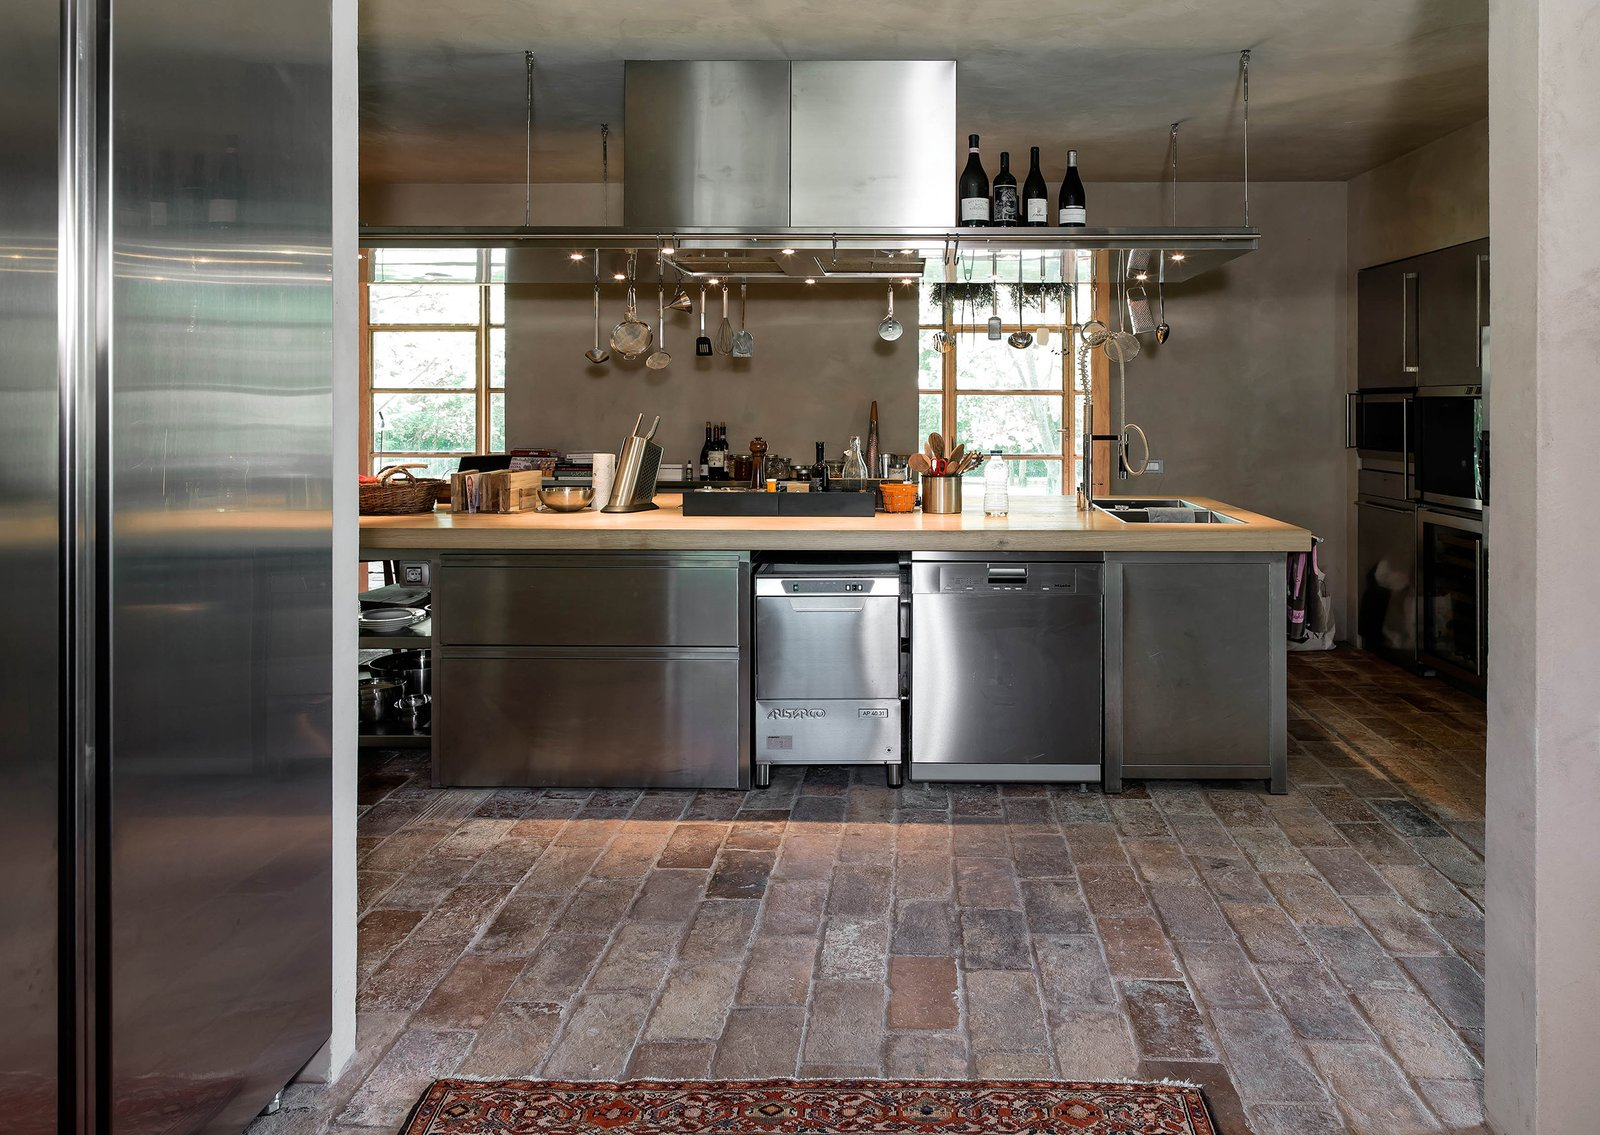 Kitchen, Wood Counter, Metal Cabinet, Laminate Cabinet, Cooktops, and Dishwasher  Country House by zanon architetti associati